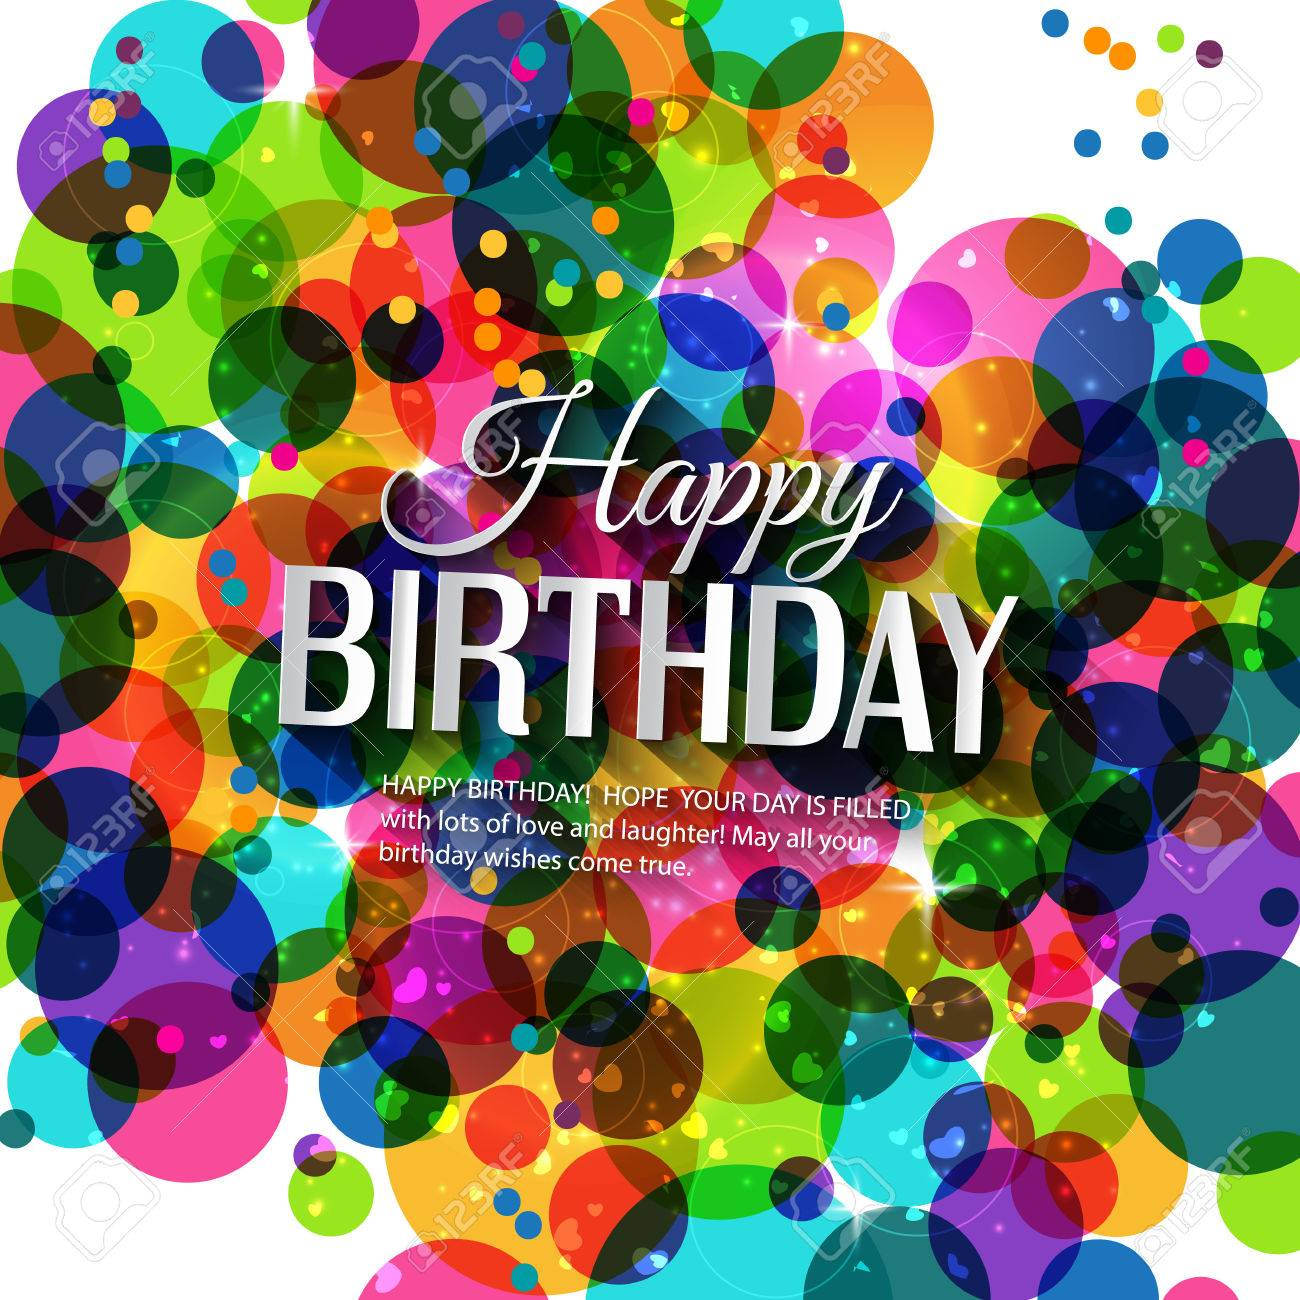 Birthday card in bright colors. - 31423557